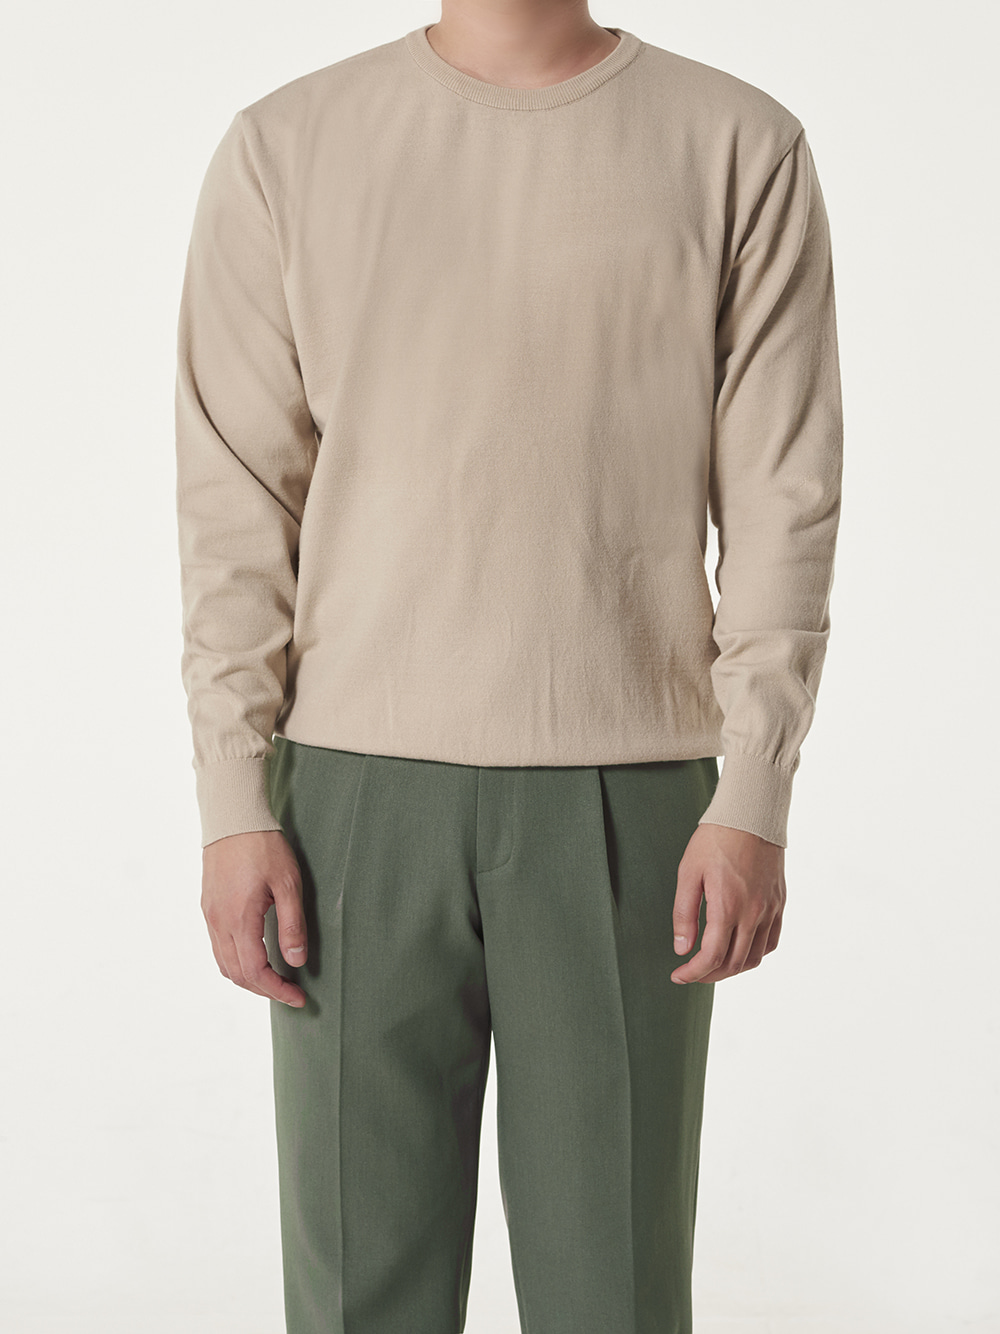 -[DEVERMAN] Soft touch solid crew neck knit (beige)